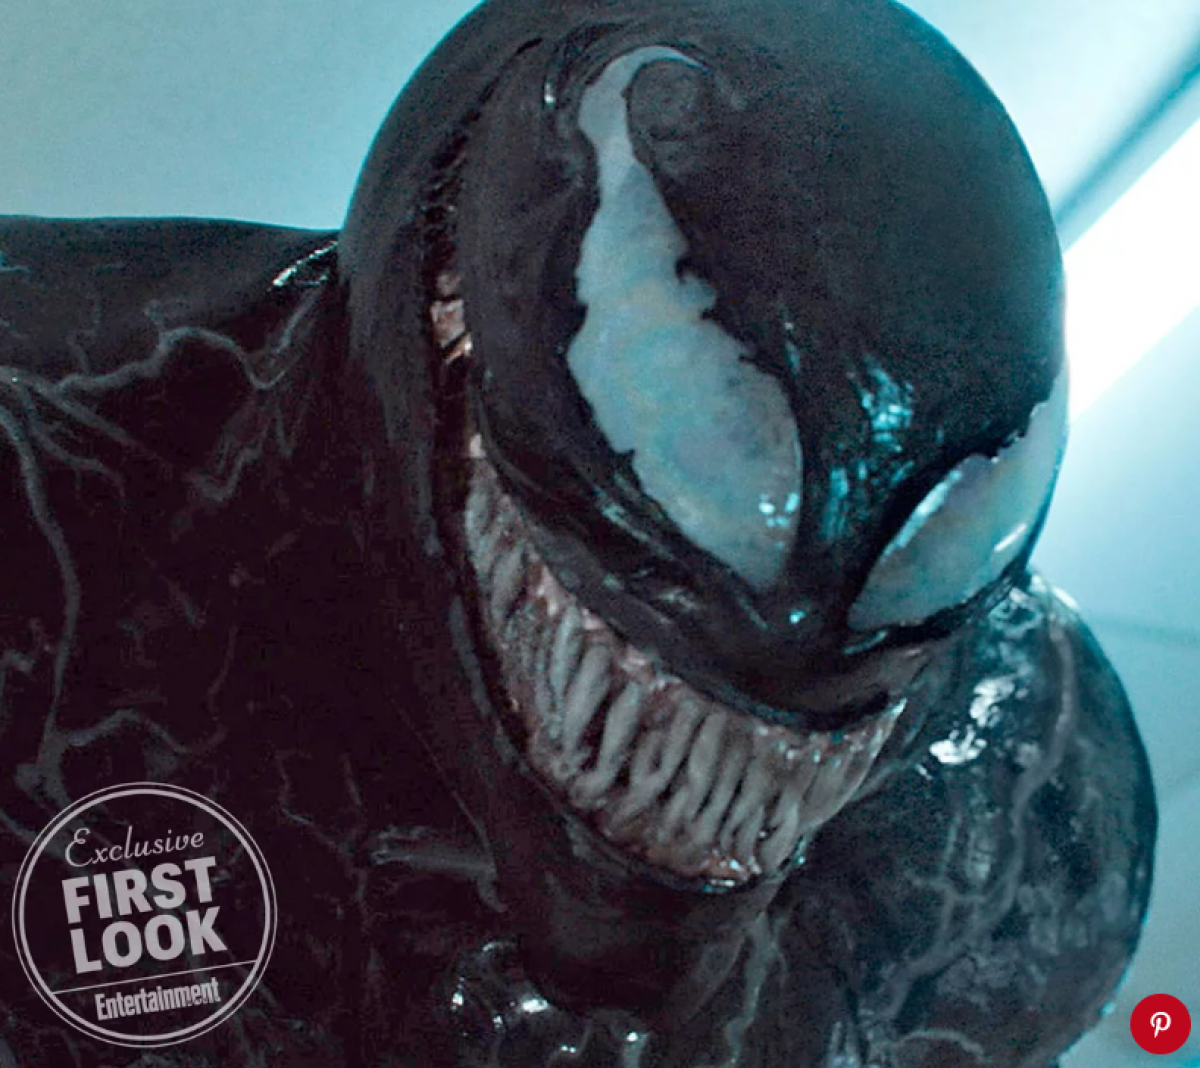 New Image From Venom And What Made Tom Hardy Choose The Role